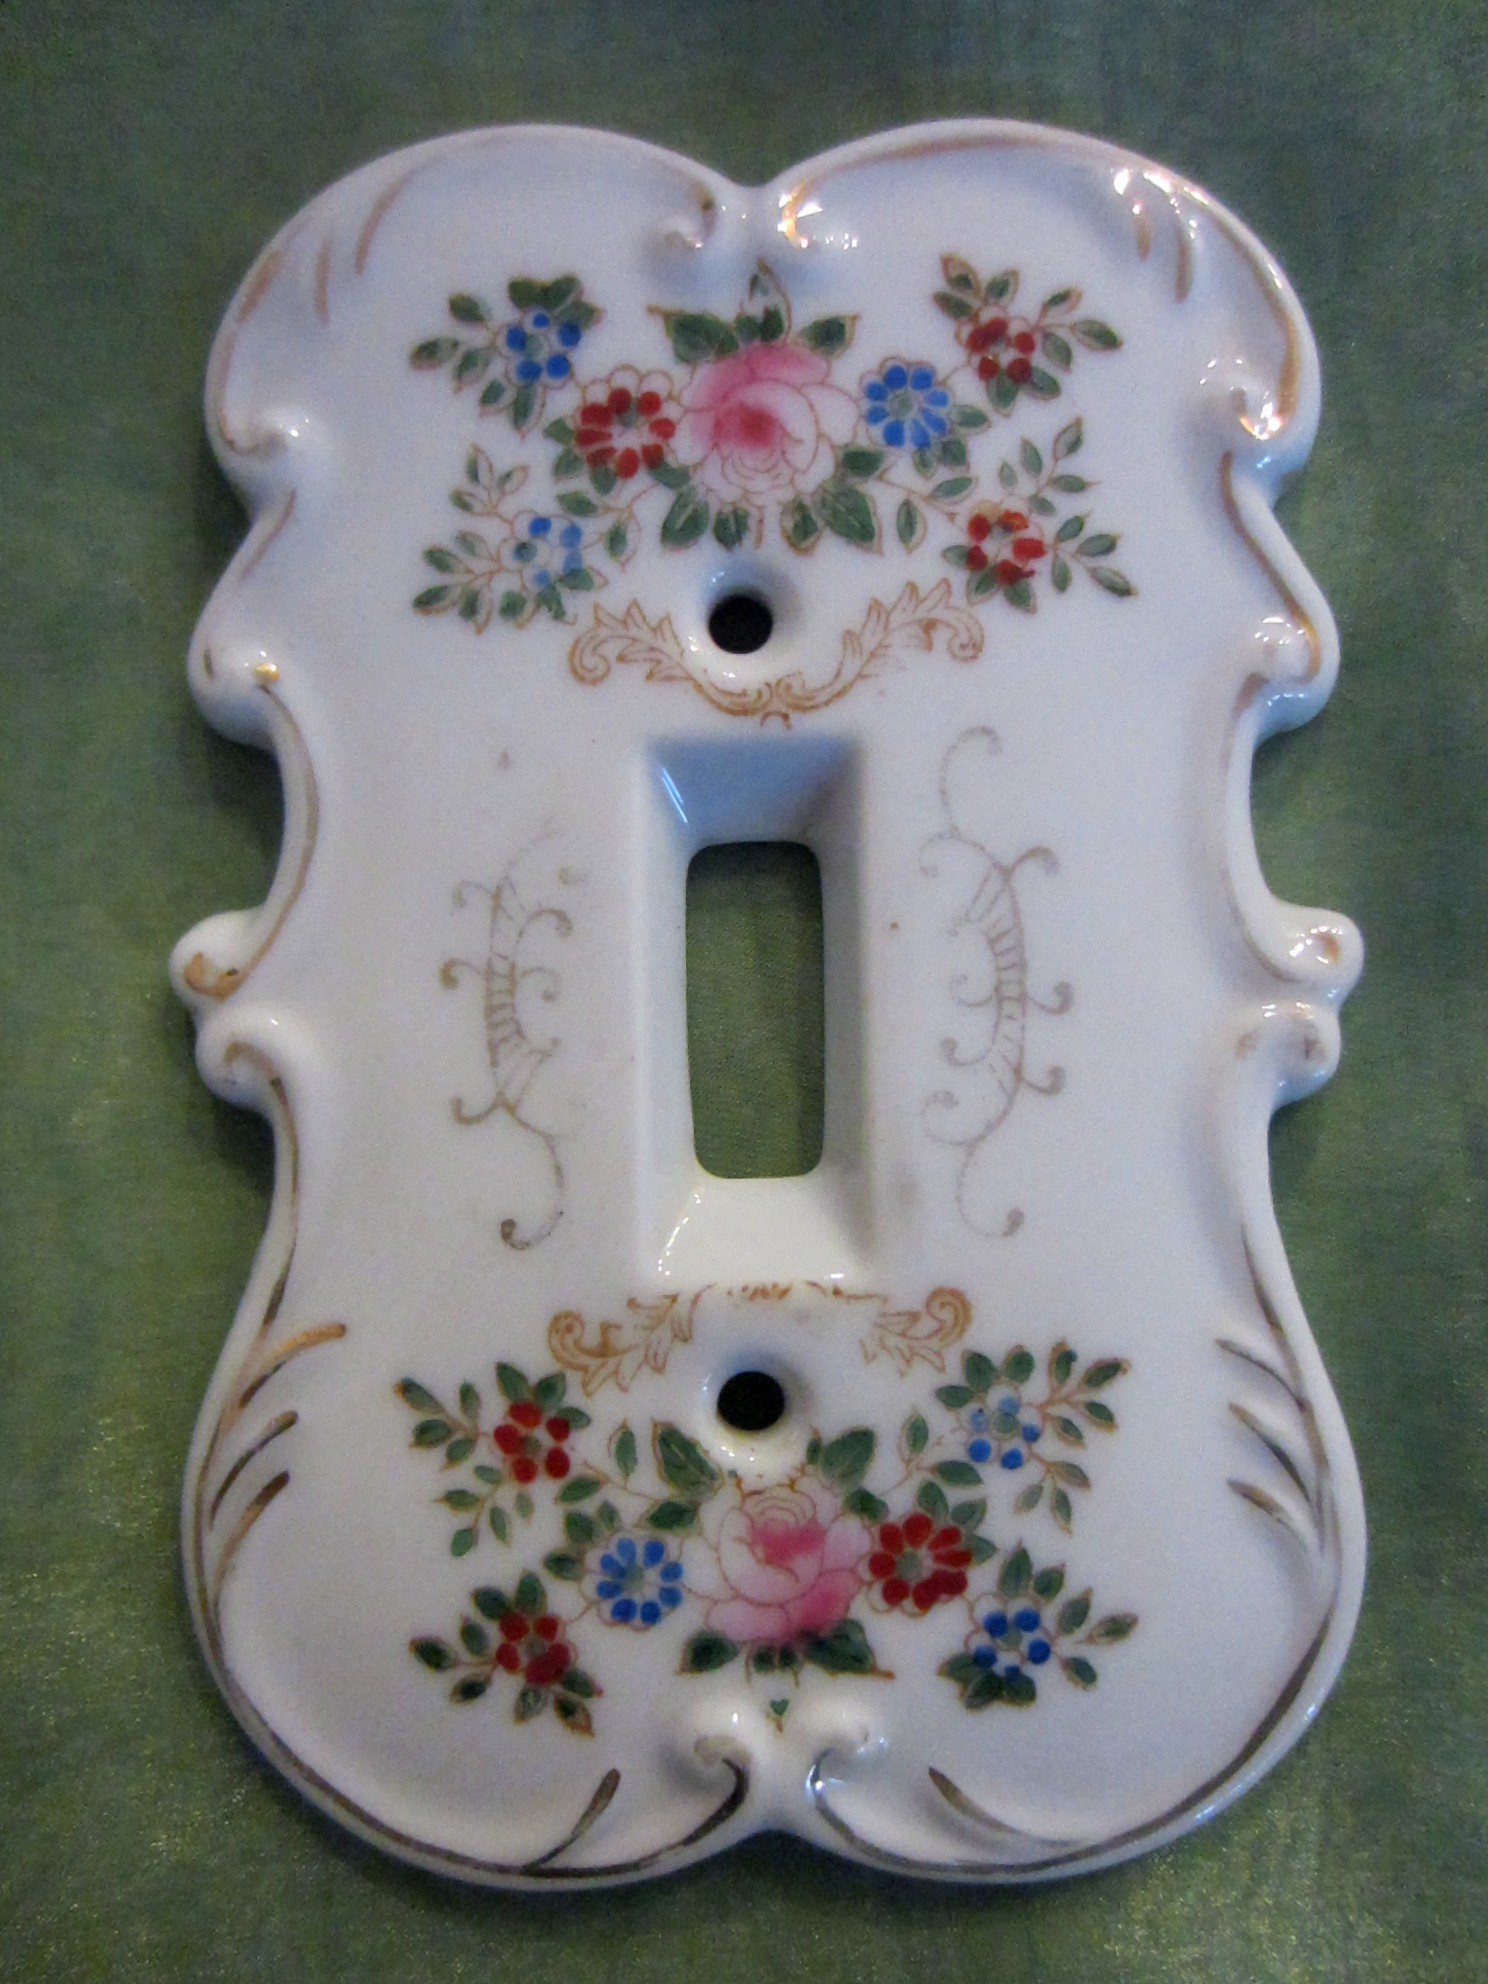 Hand Painted Plates : Arnart creation japan porcelain hand painted switch plates